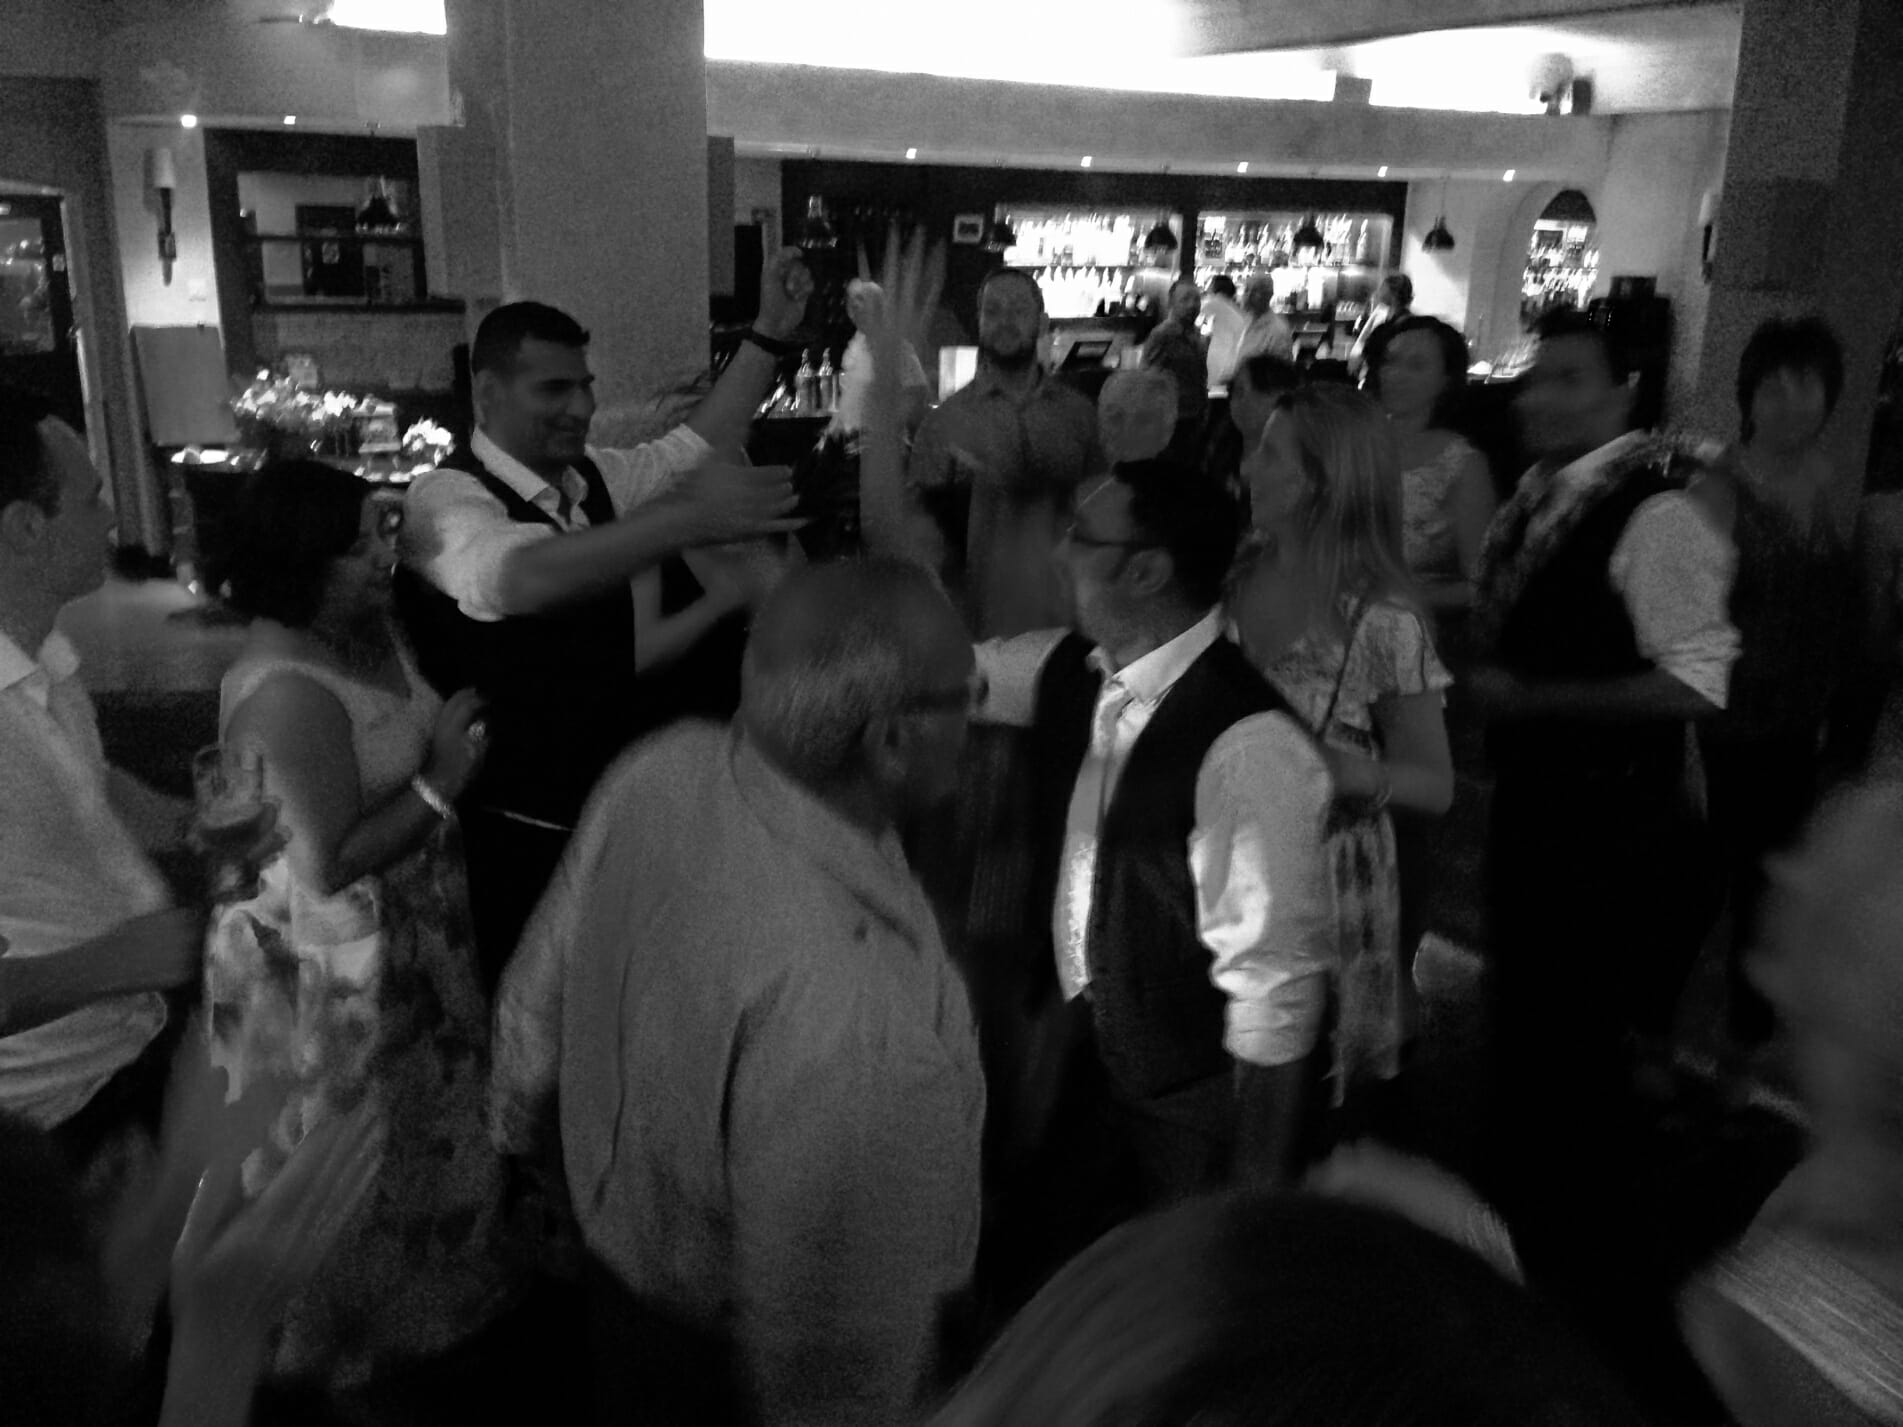 hothorpe hall band,Leicester function band, band in leicester, band hopthorne house, wedding band hopthorne house, function band Leicester